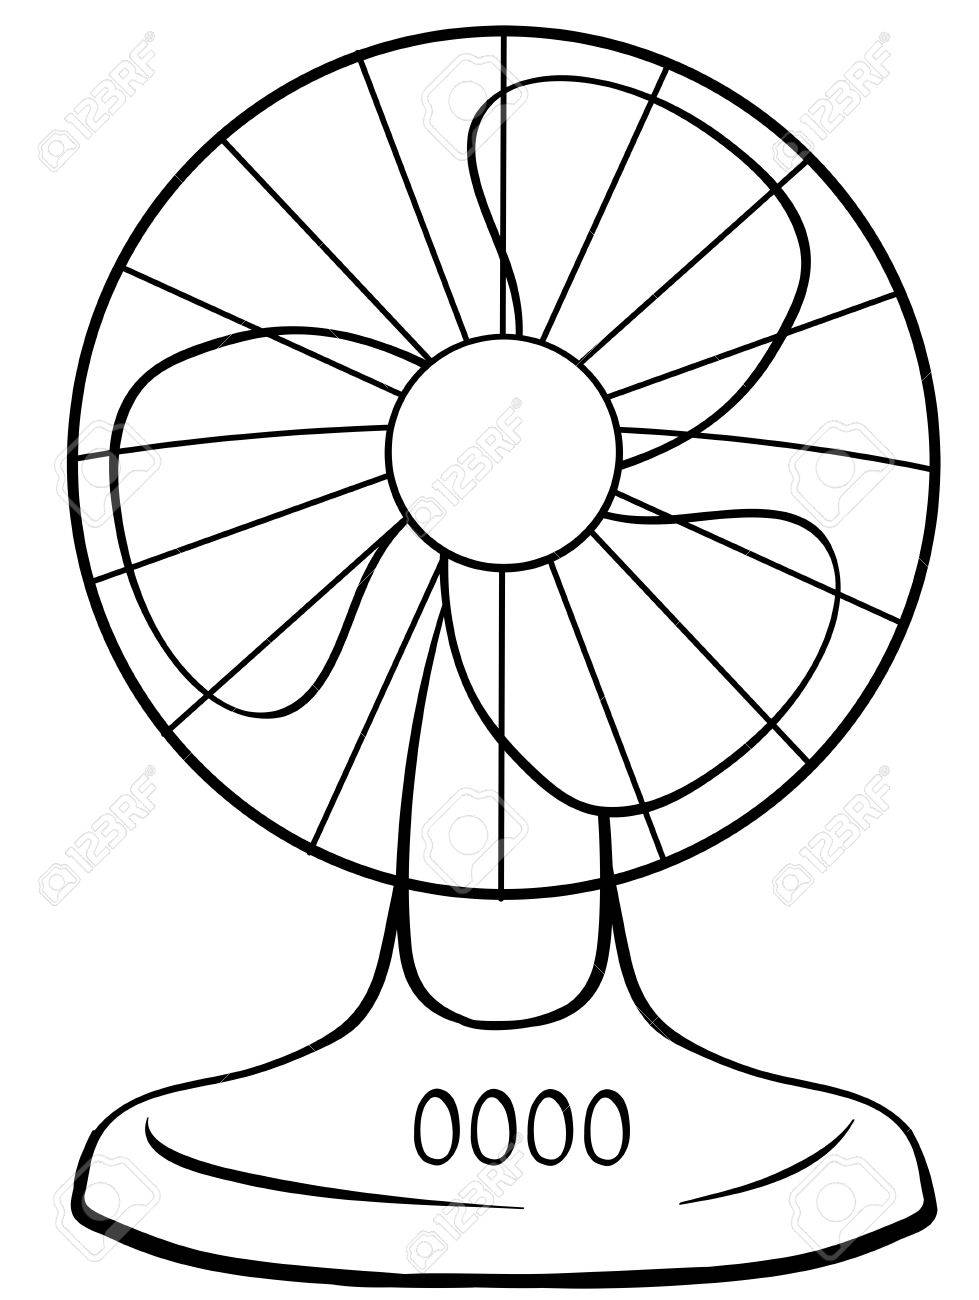 Close up electric fan with buttons.